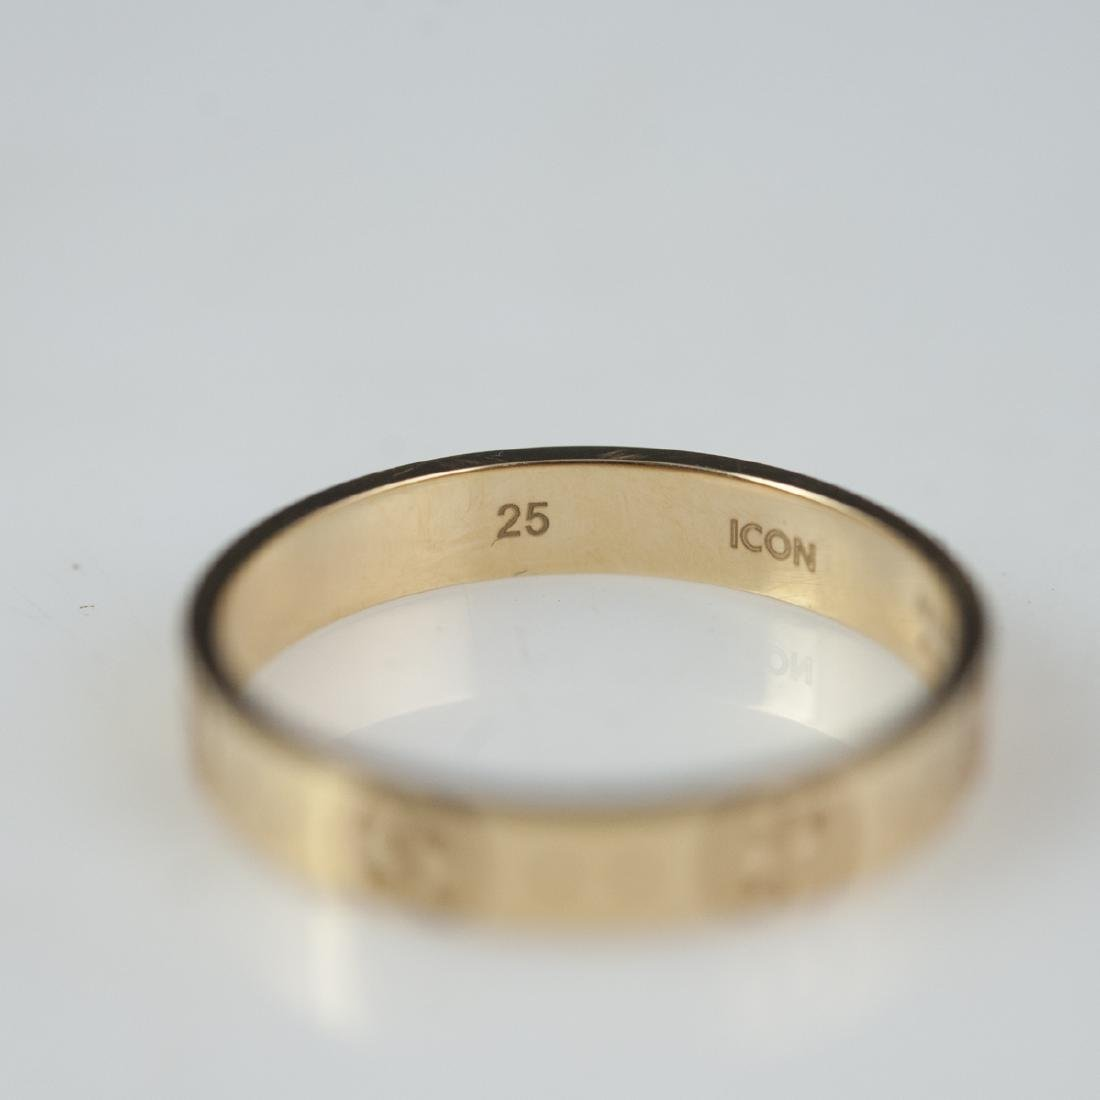 18kt Gucci Icon Ring - 6